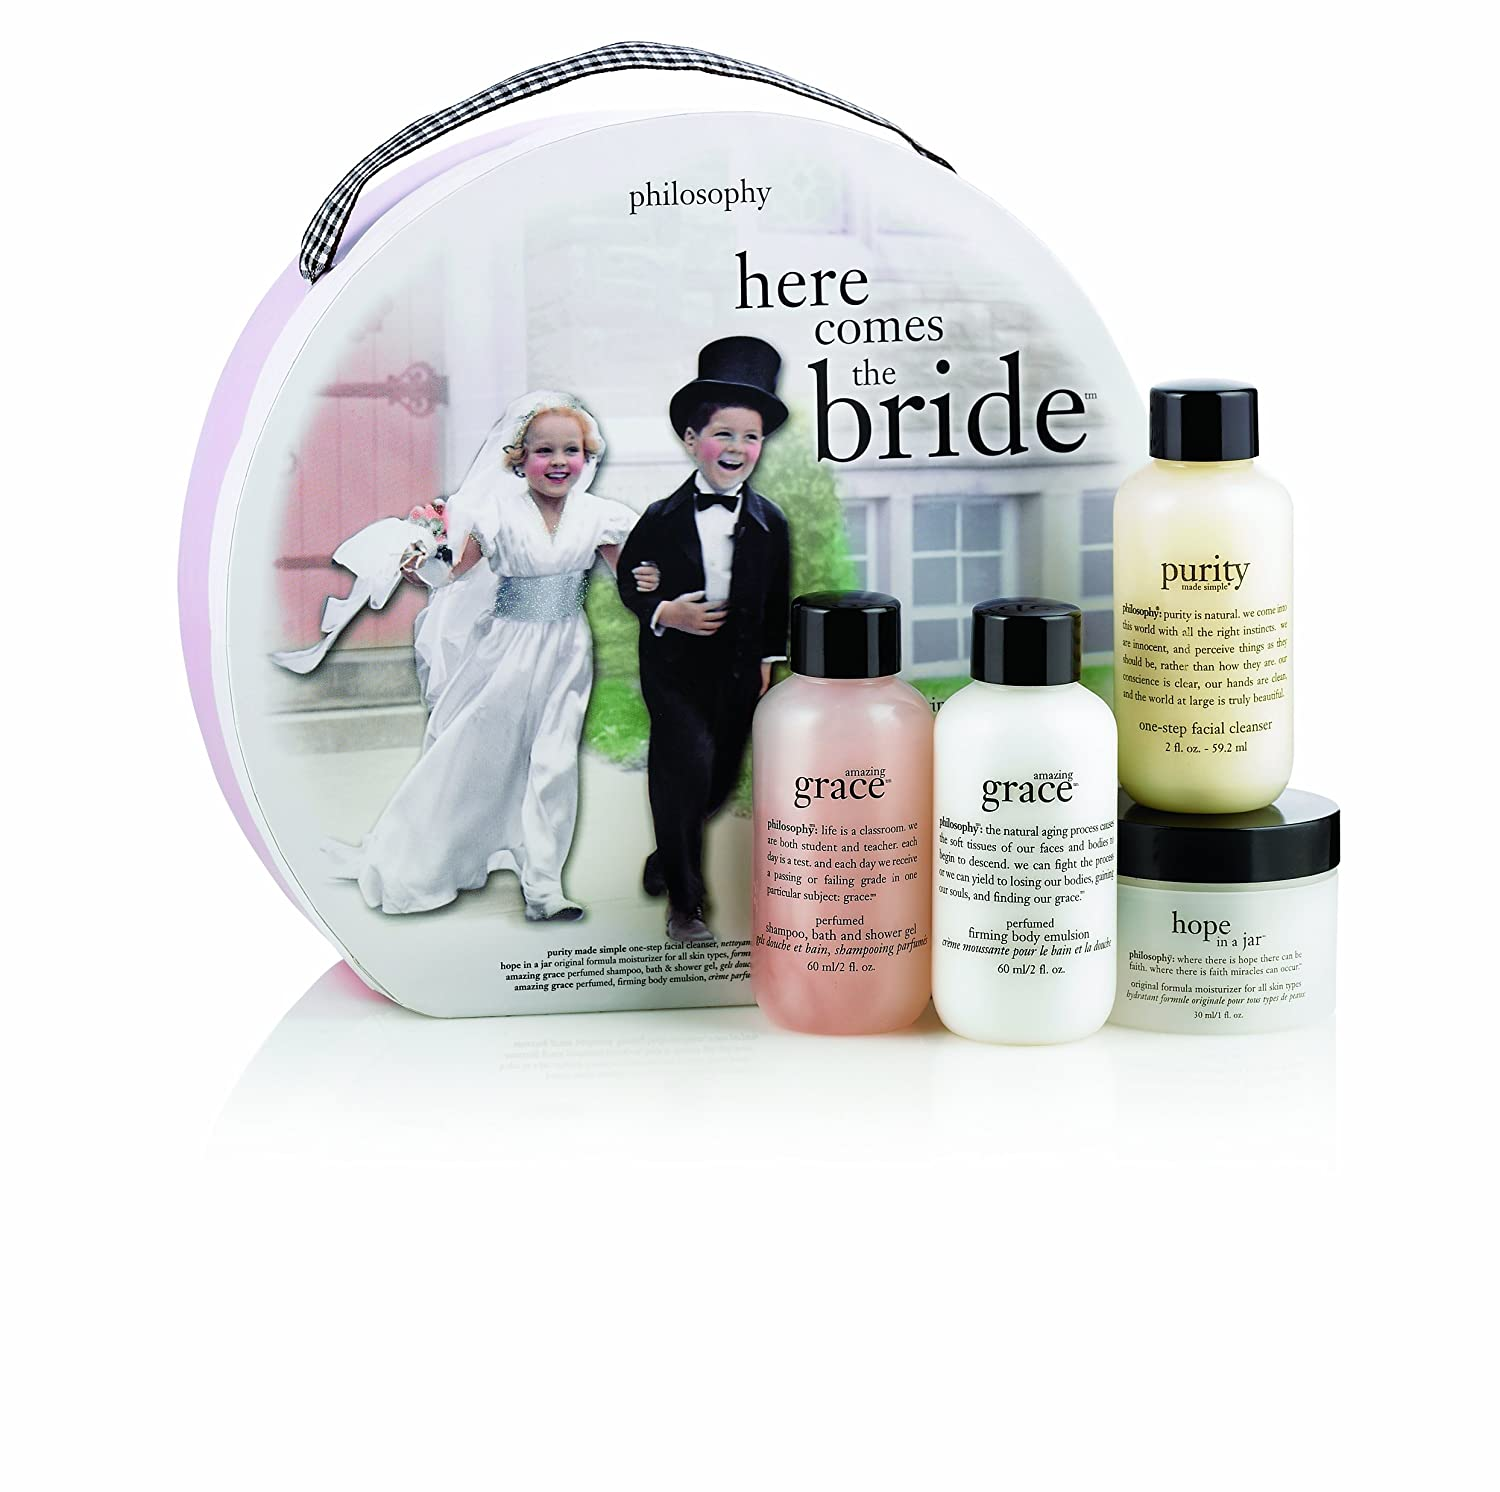 Bridal Shower Gift Guide Riss Home Design Riss Home Design Home ...